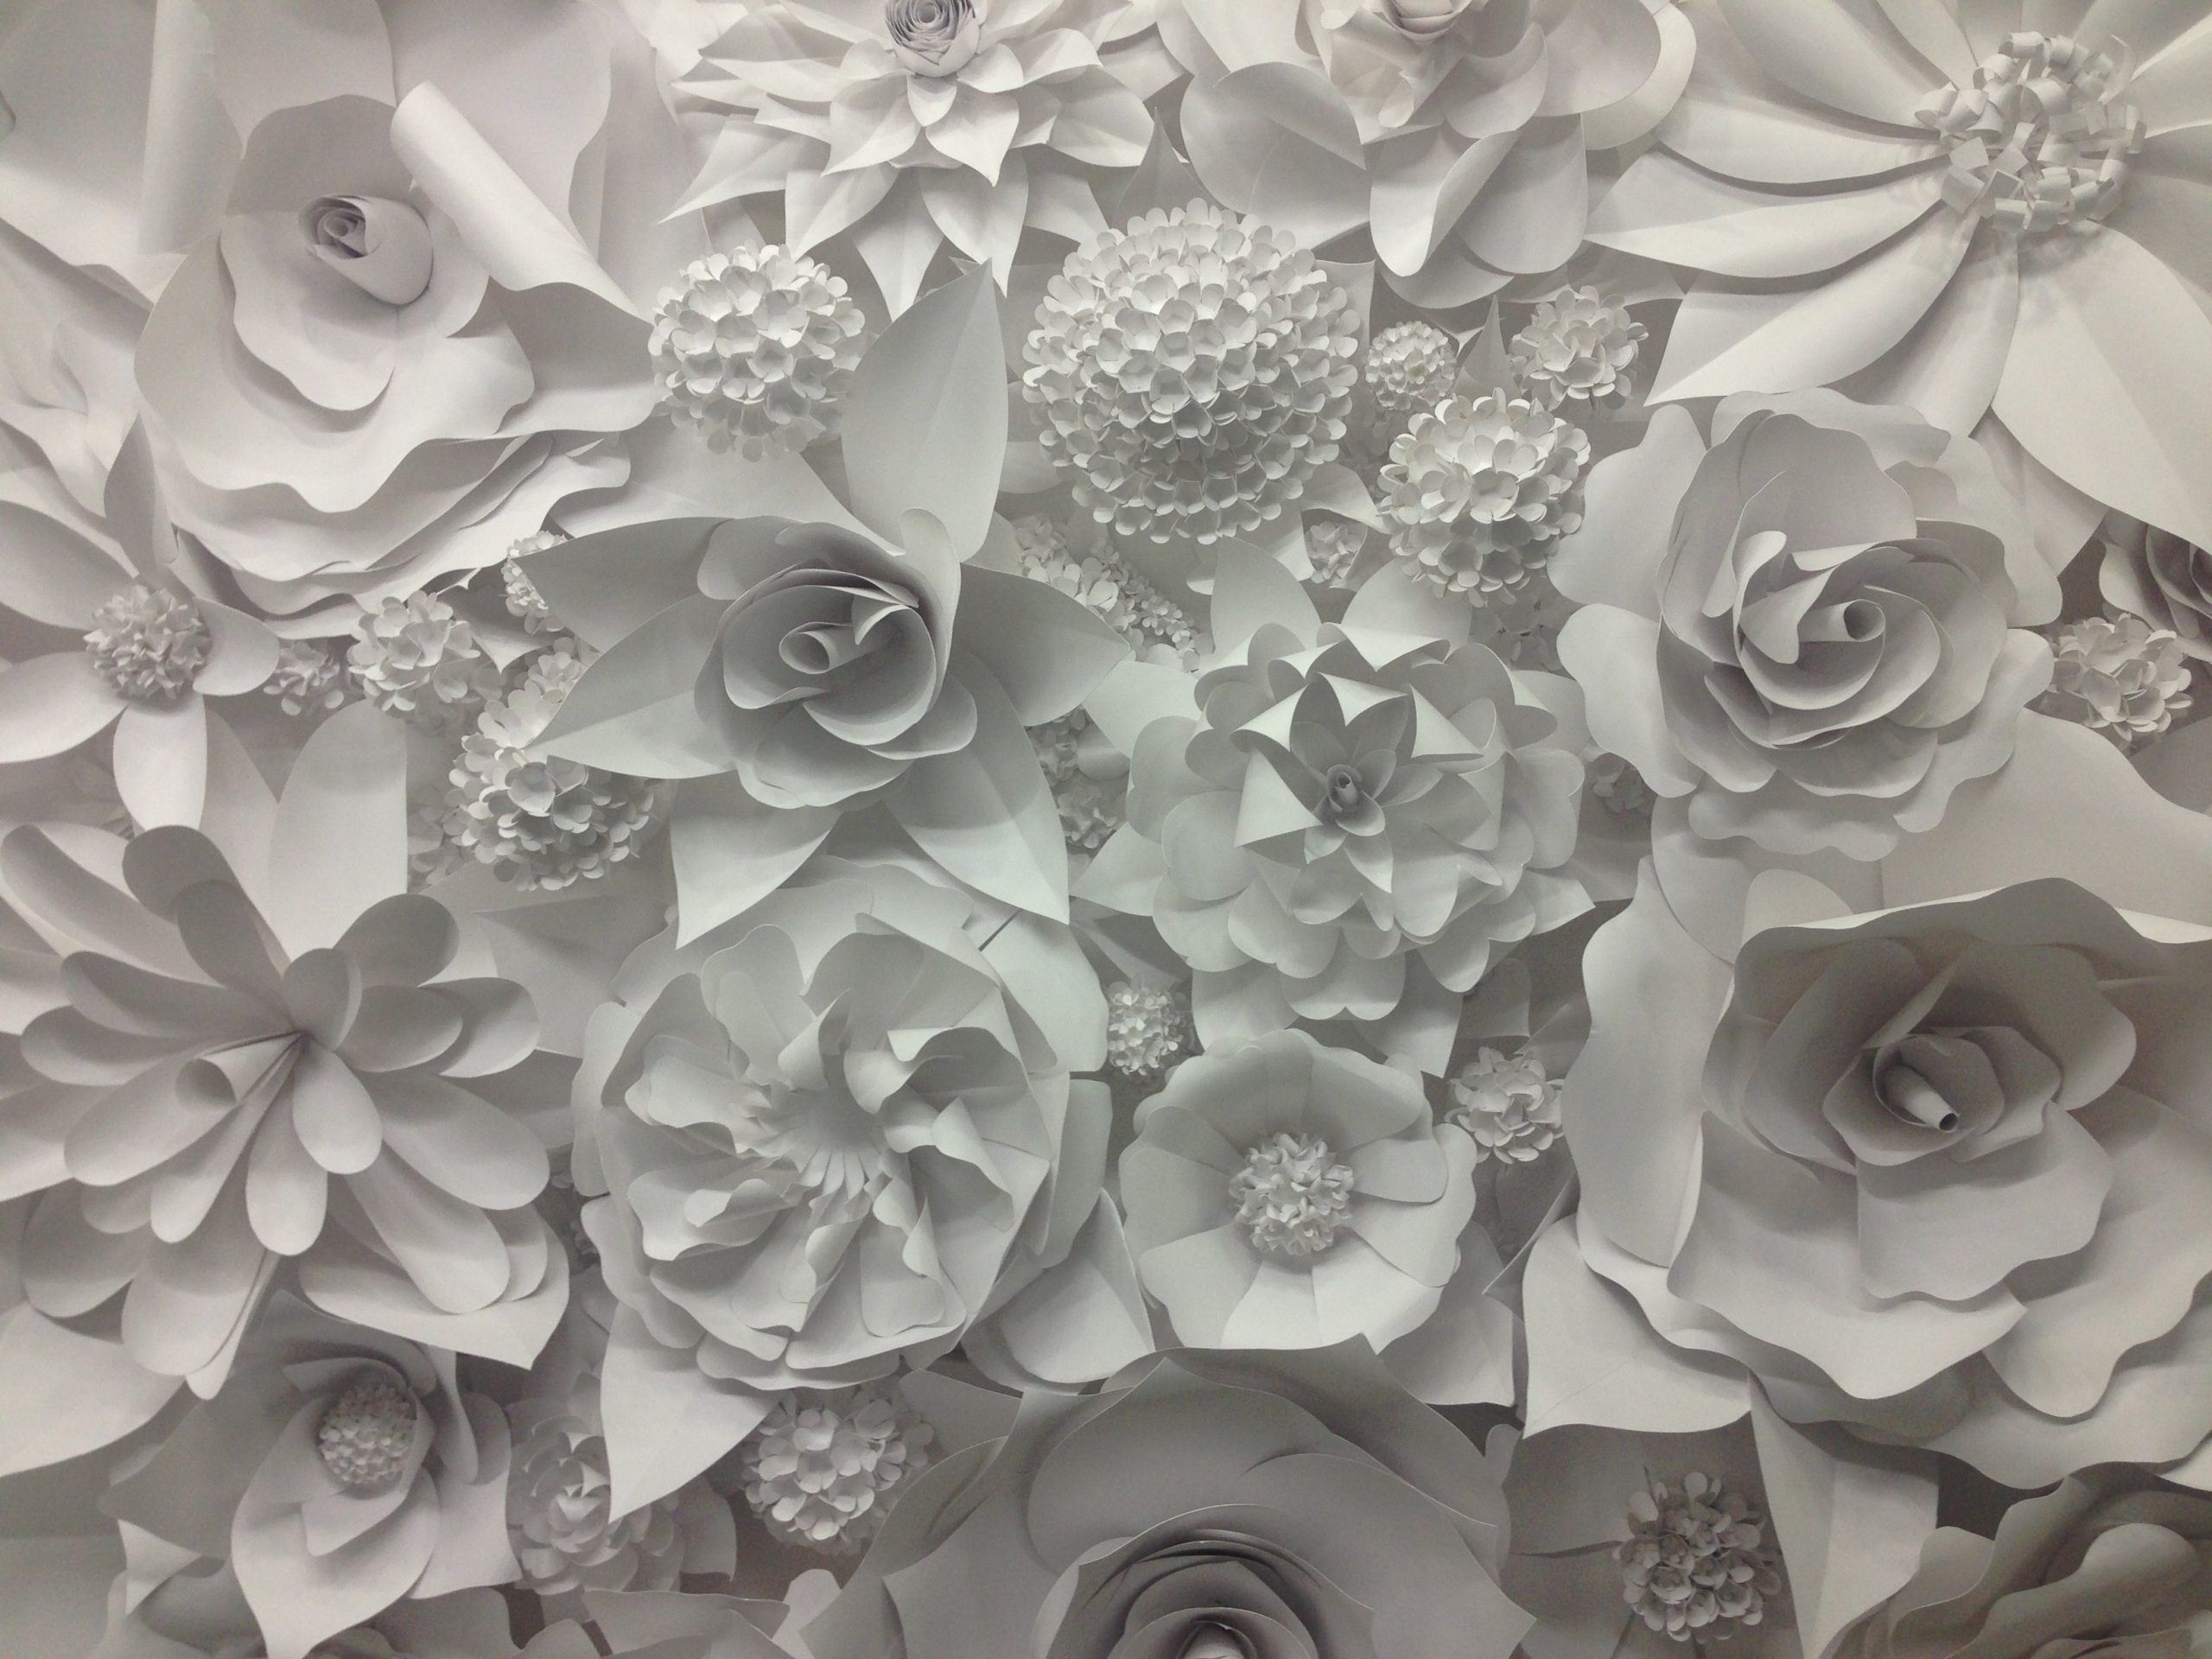 3d paper flower wonder wall collection and sculptures